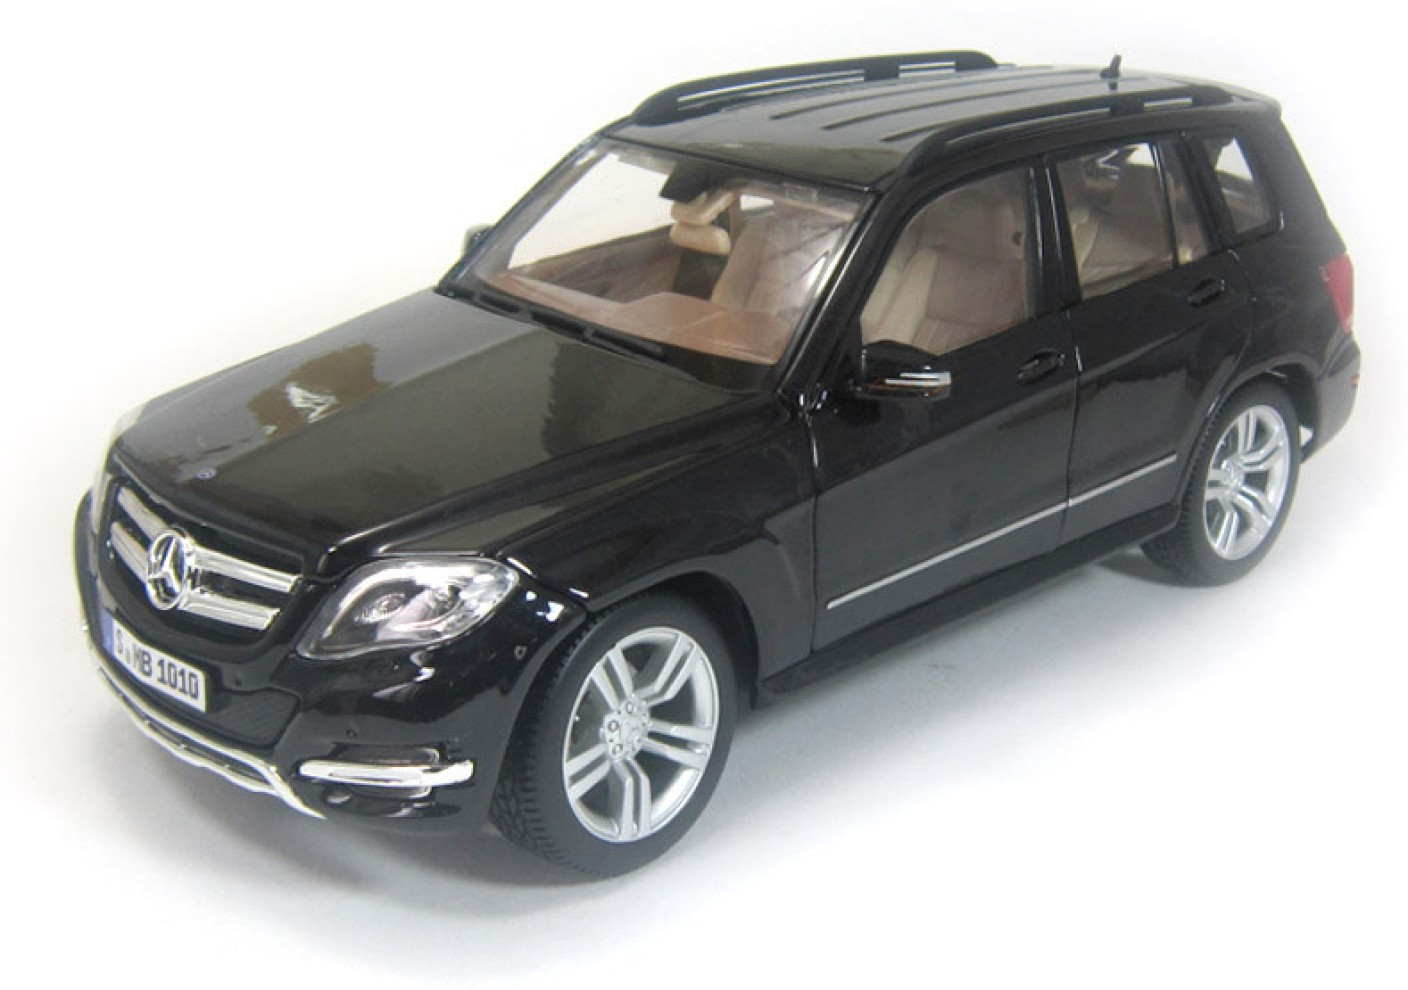 maisto mercedes benz glk class 1 18 black by car scale. Black Bedroom Furniture Sets. Home Design Ideas